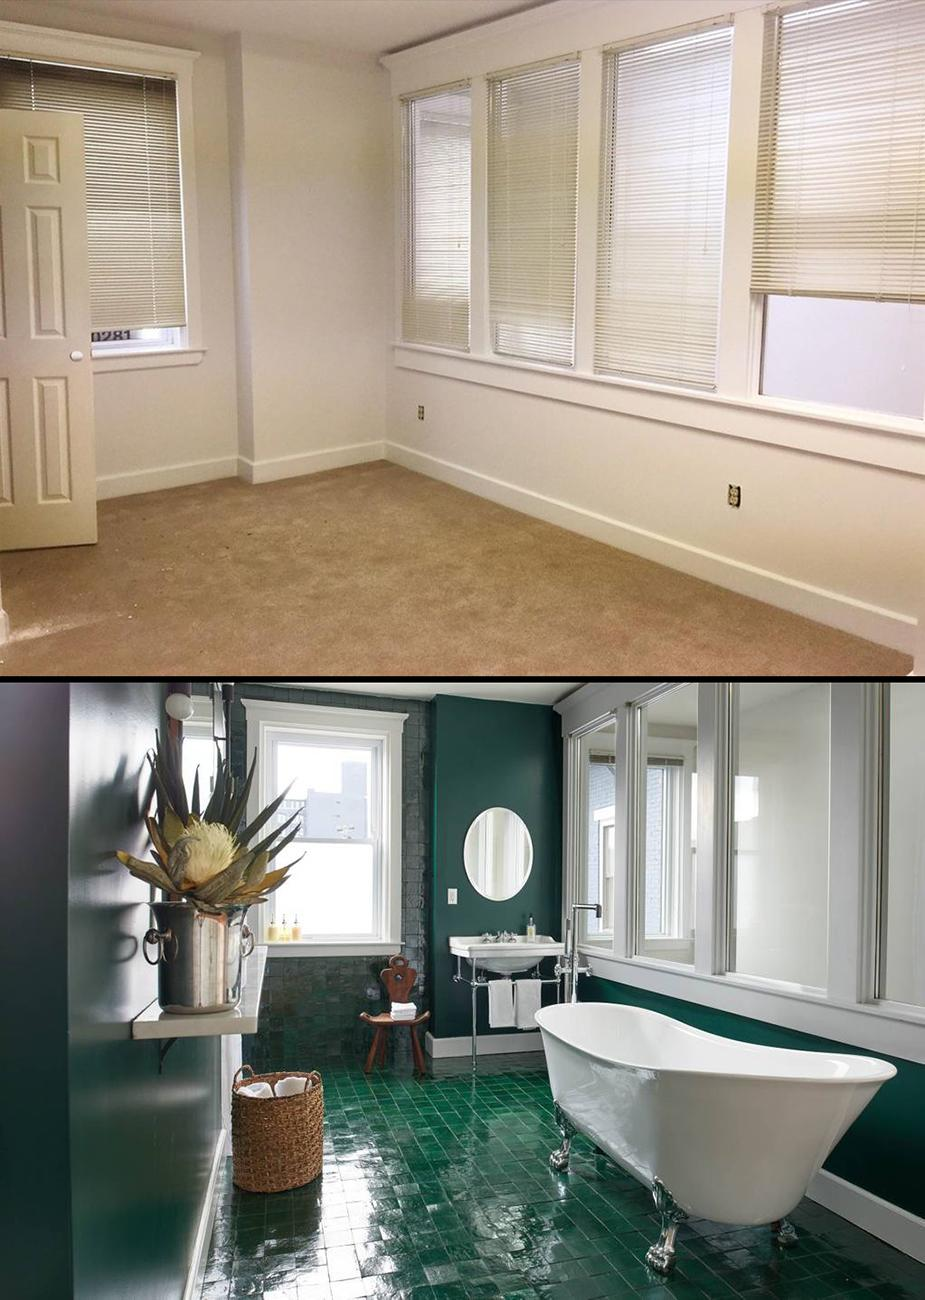 Before the renovation vs. after / Top image courtesy of the Carriage House, bottom image by{ }Brian Rineair // Published: 10.30.19